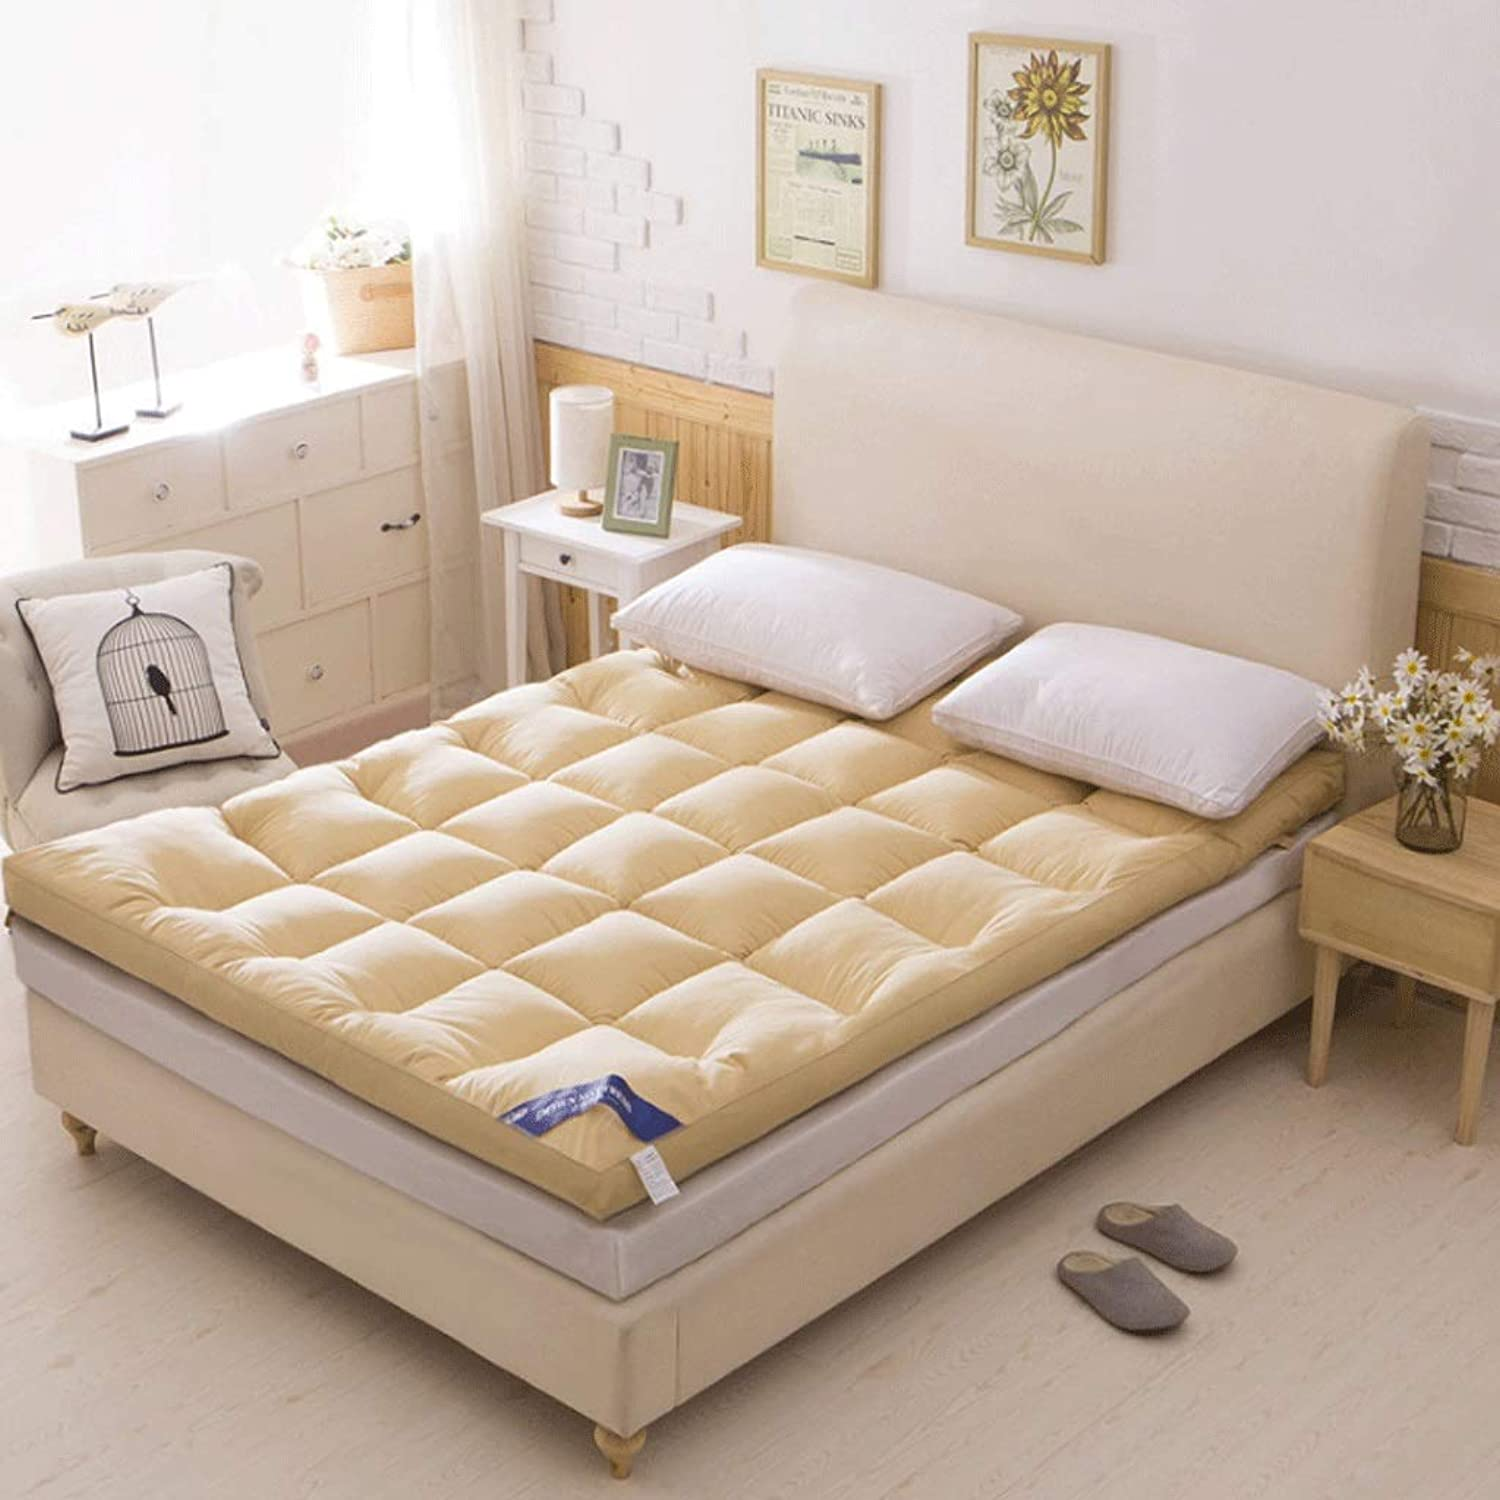 Winter Padded Mattress Student Dormitory Sleeping Pad Feather Velvet Padded - 5 Sizes (color   3, Size   100x200cm)